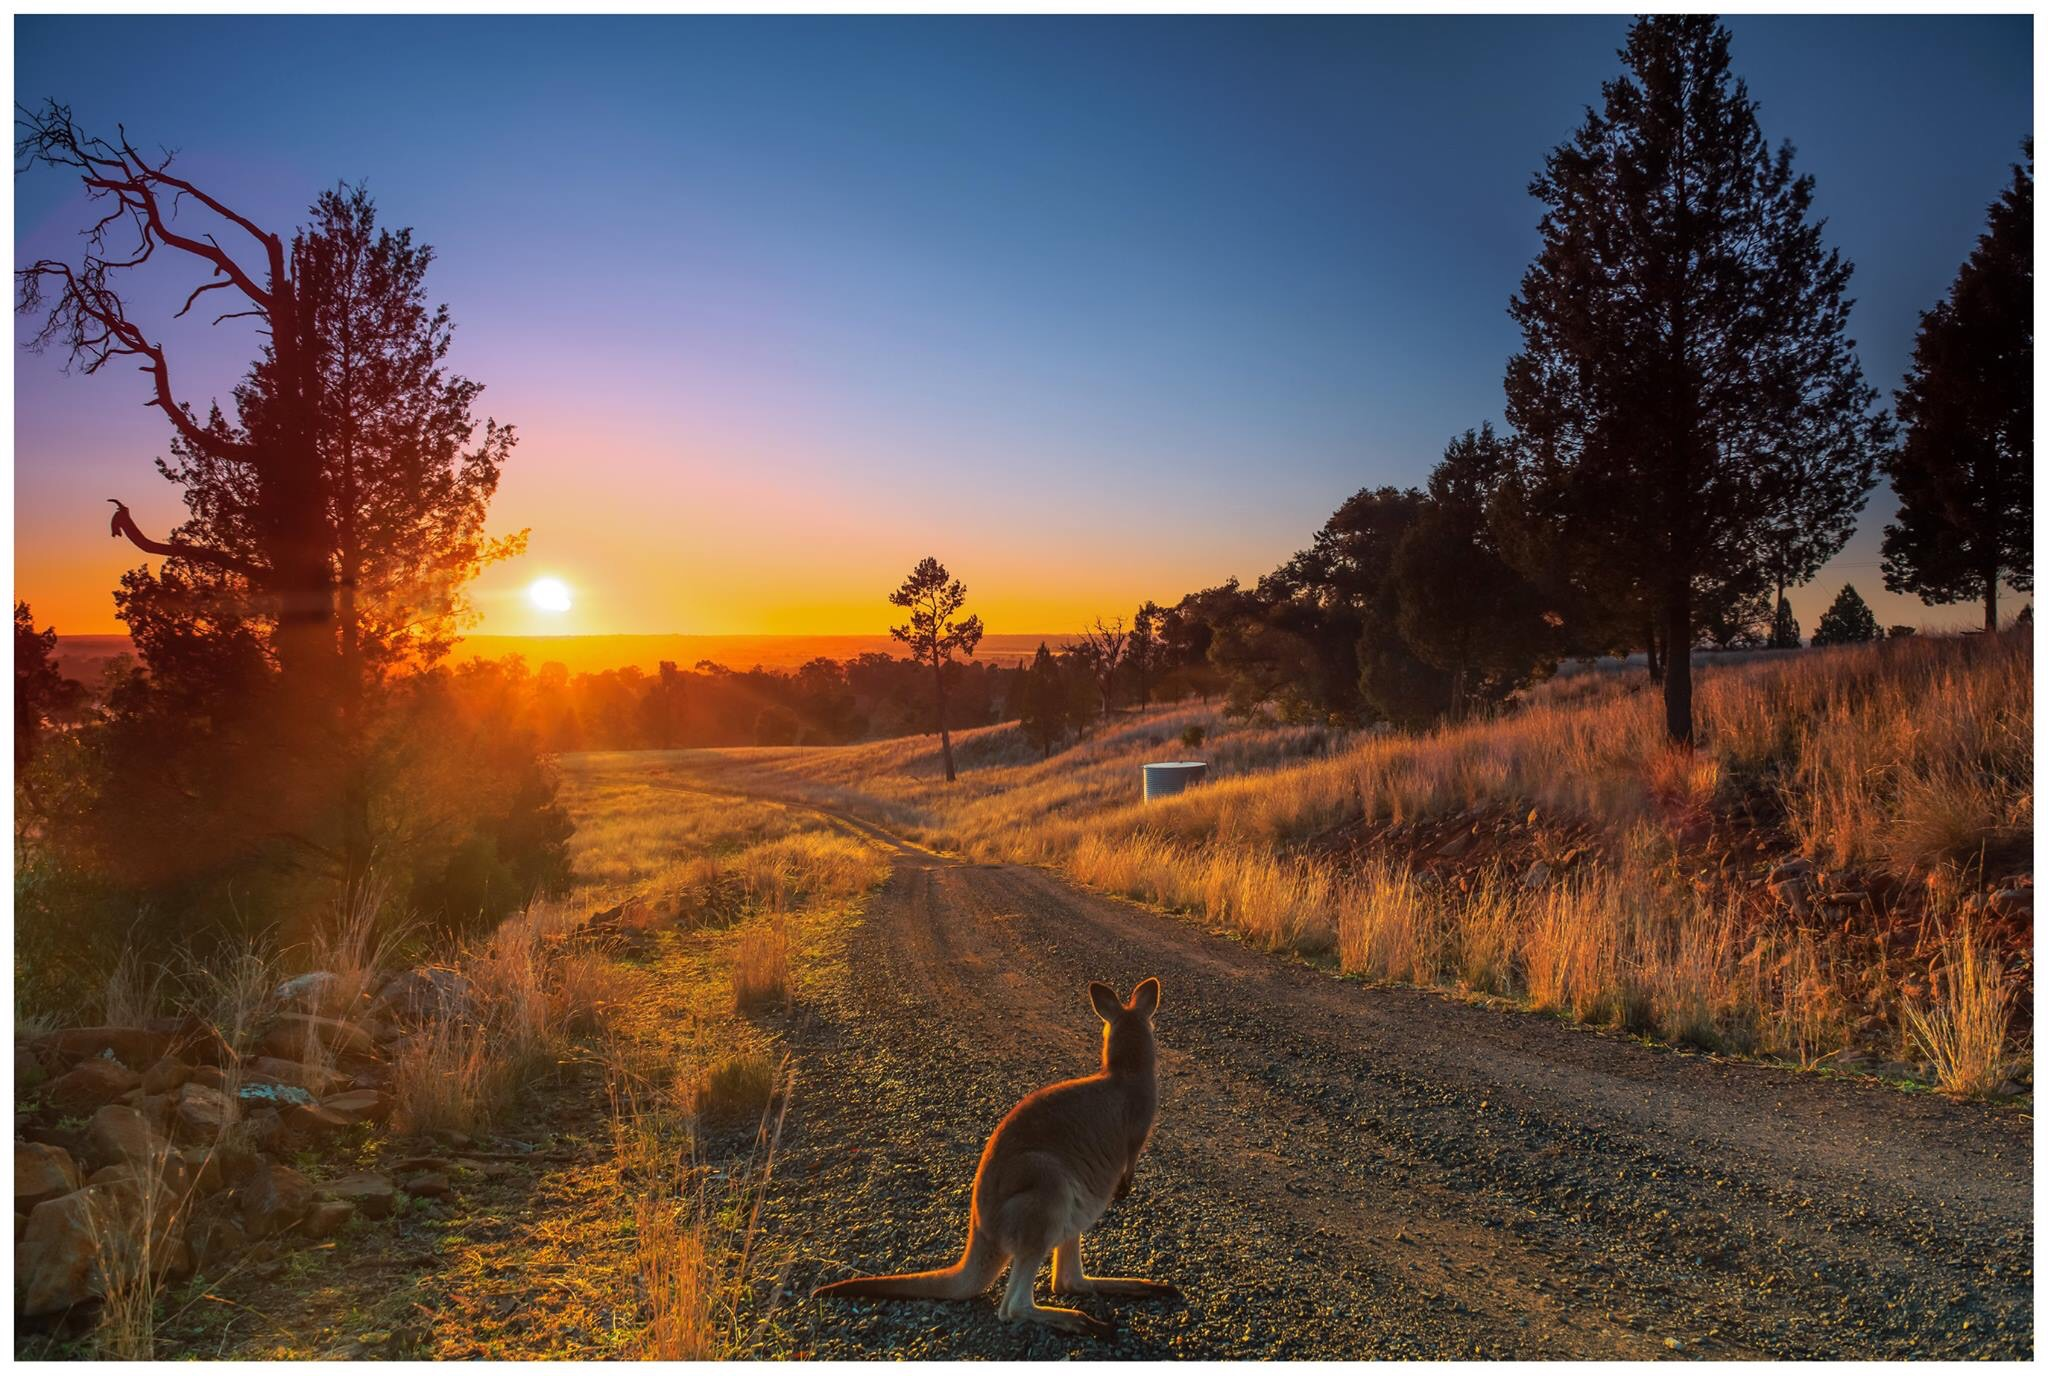 Roo hoping down thew driveway at sunrise/ gallery image